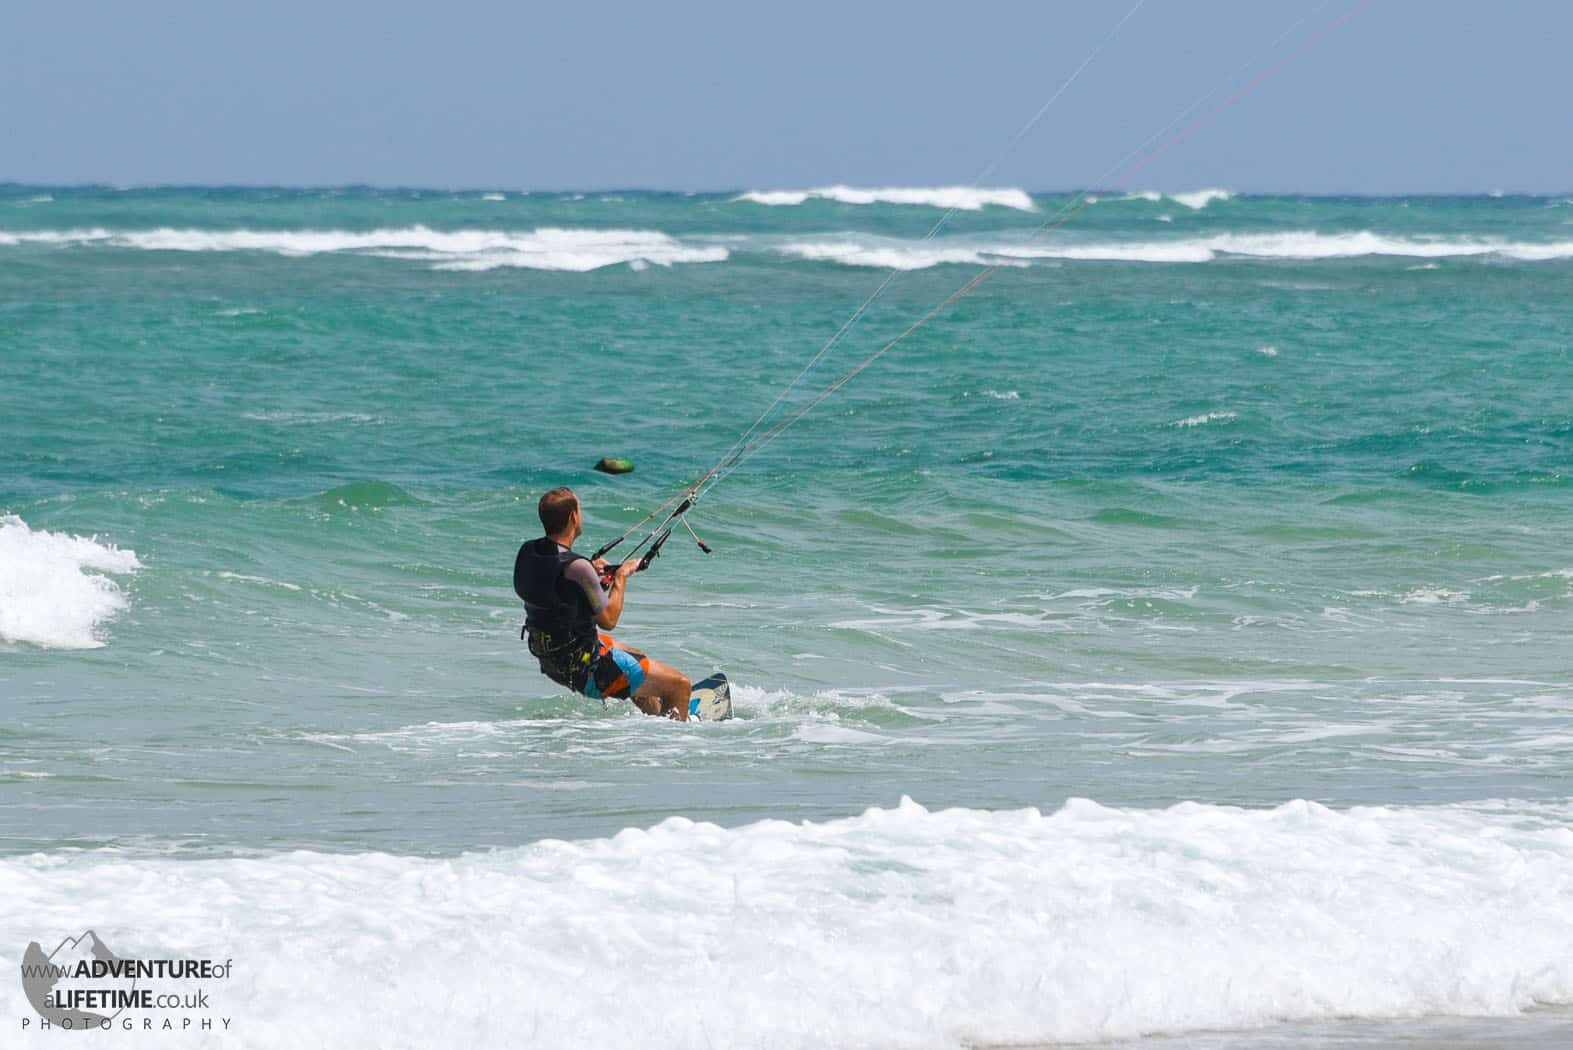 Michael Kite Surfing Nai Yang Beach